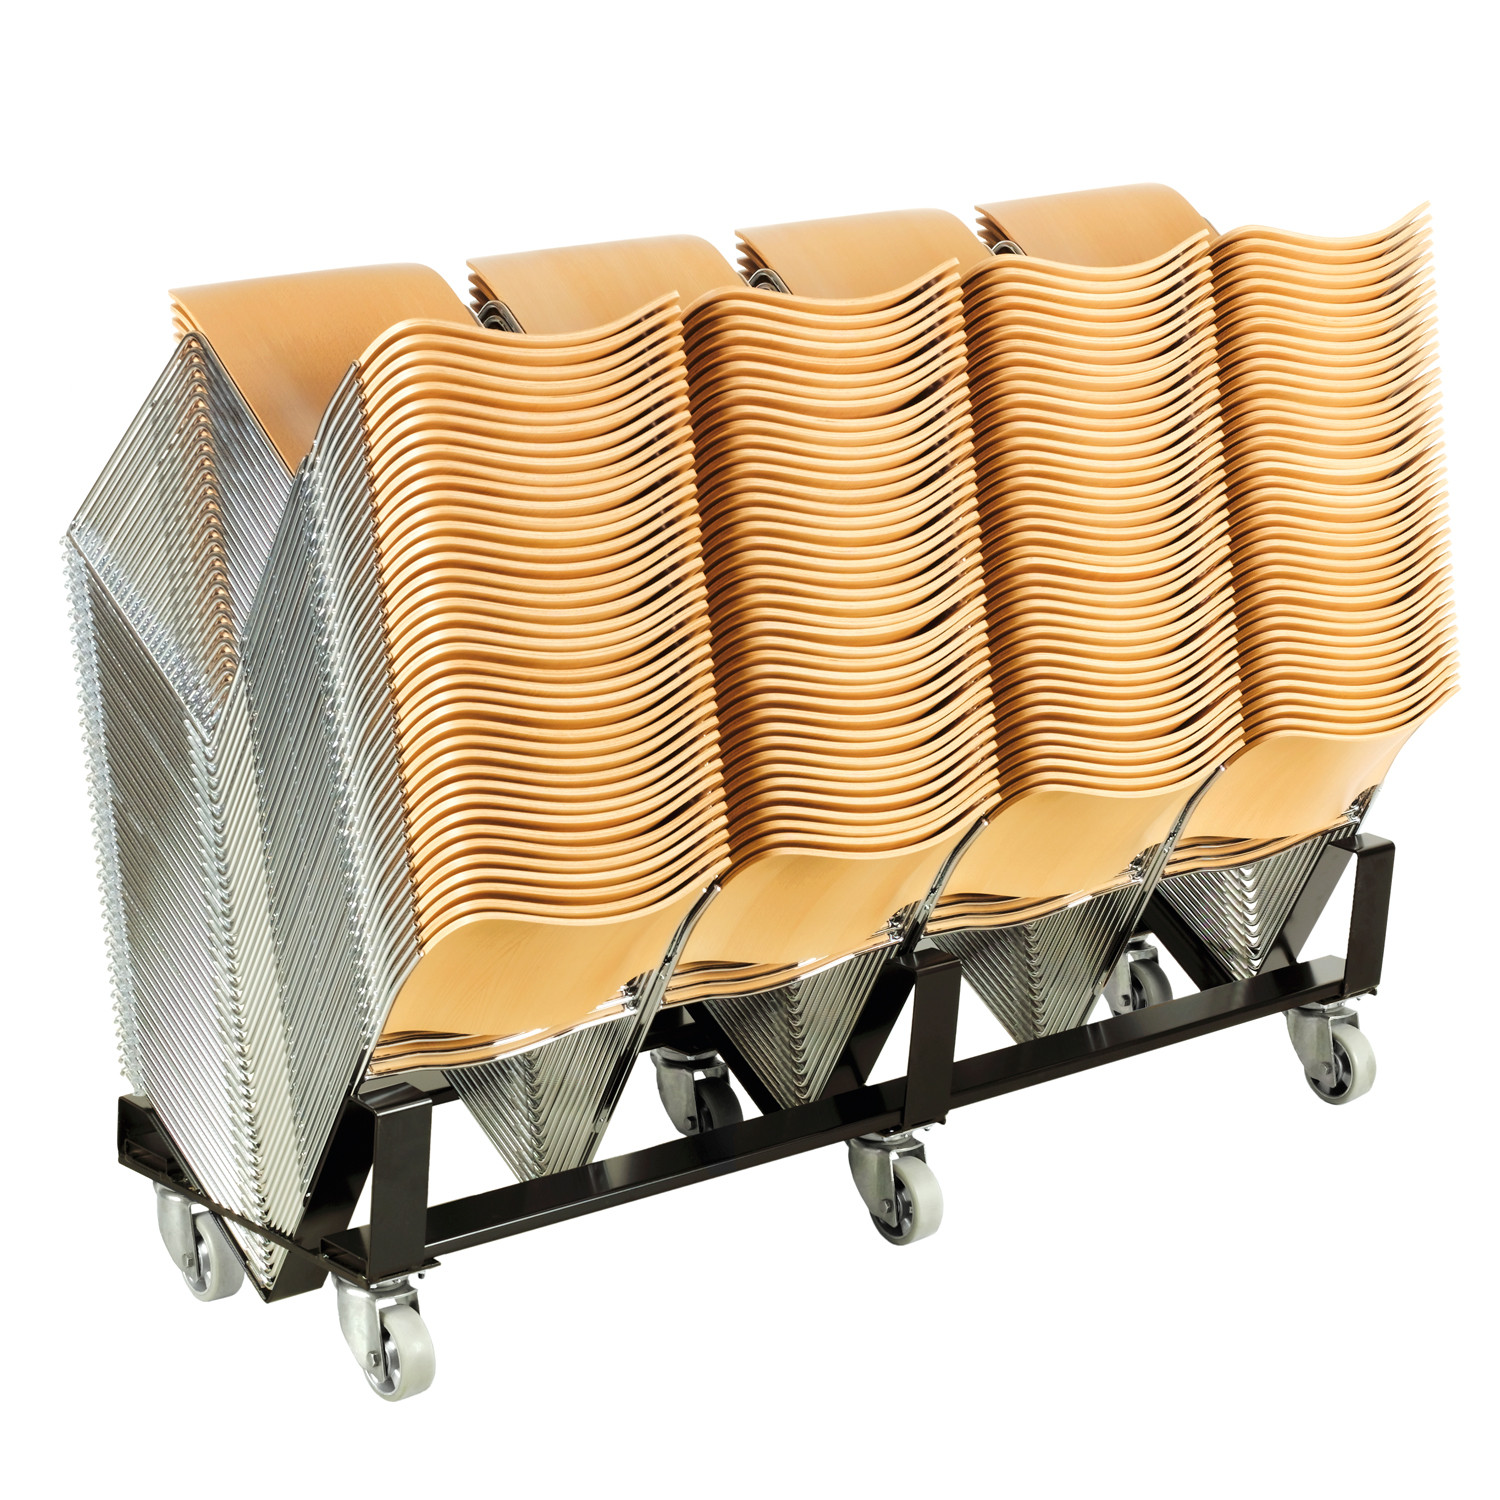 40/4 Compact Stacking Chairs